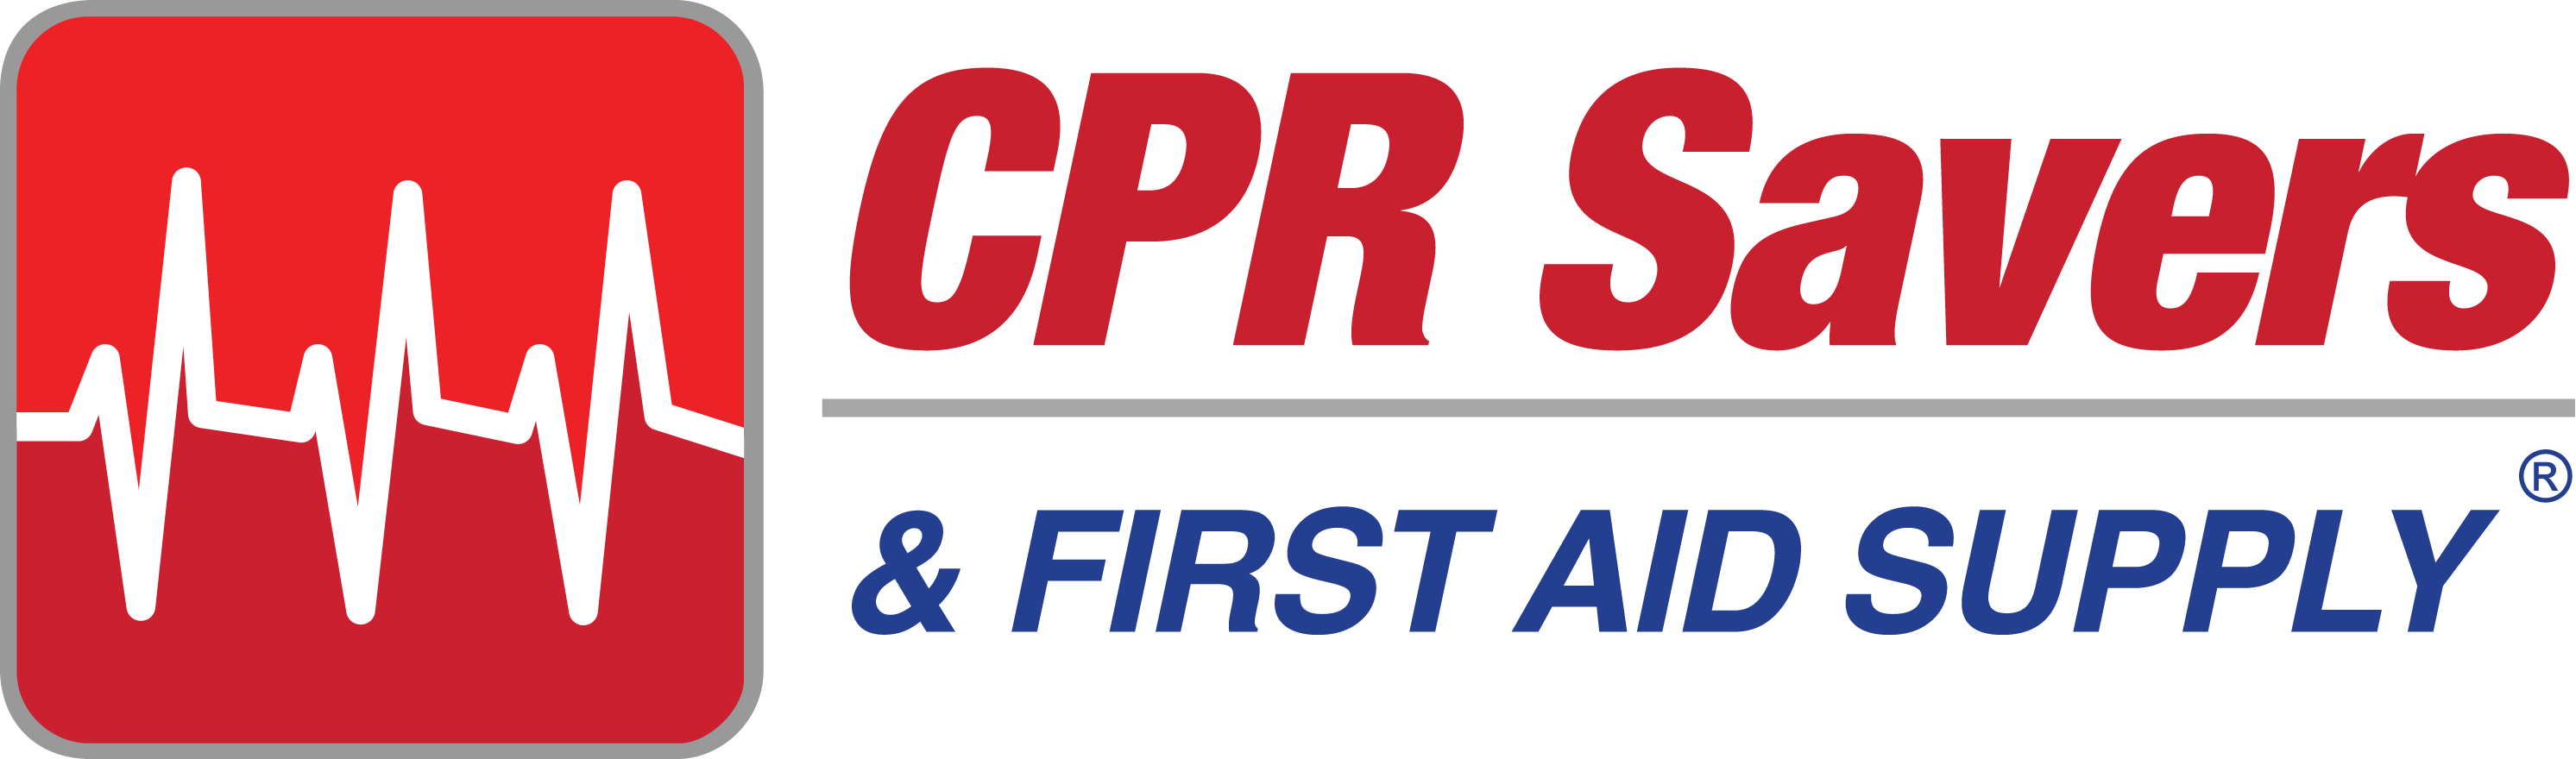 CPR Savers & First Aid Supply